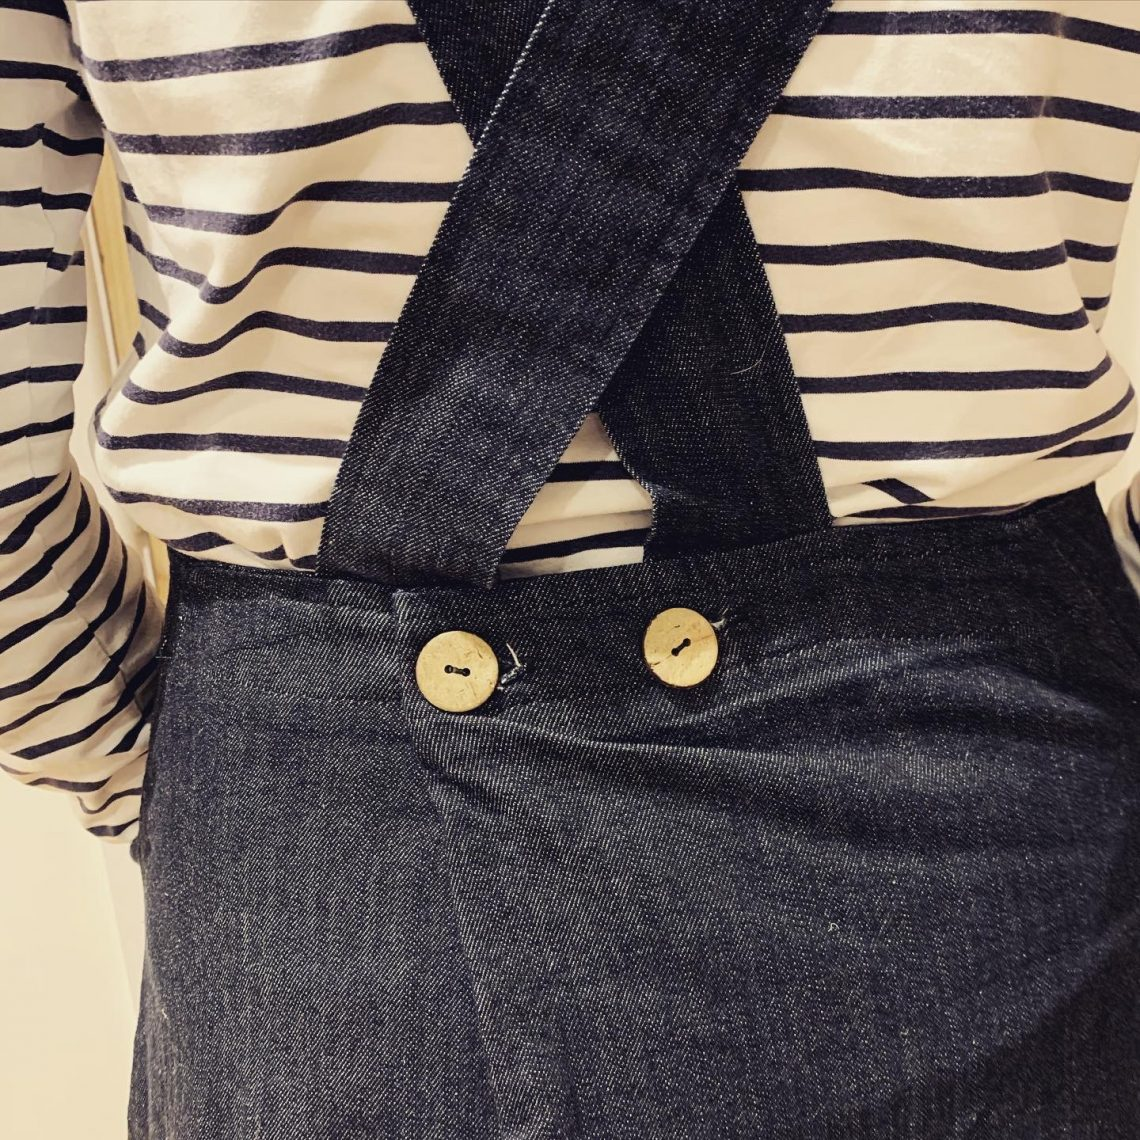 An image of the back of a denim dress where the straps cross over and are closed with wooden badges